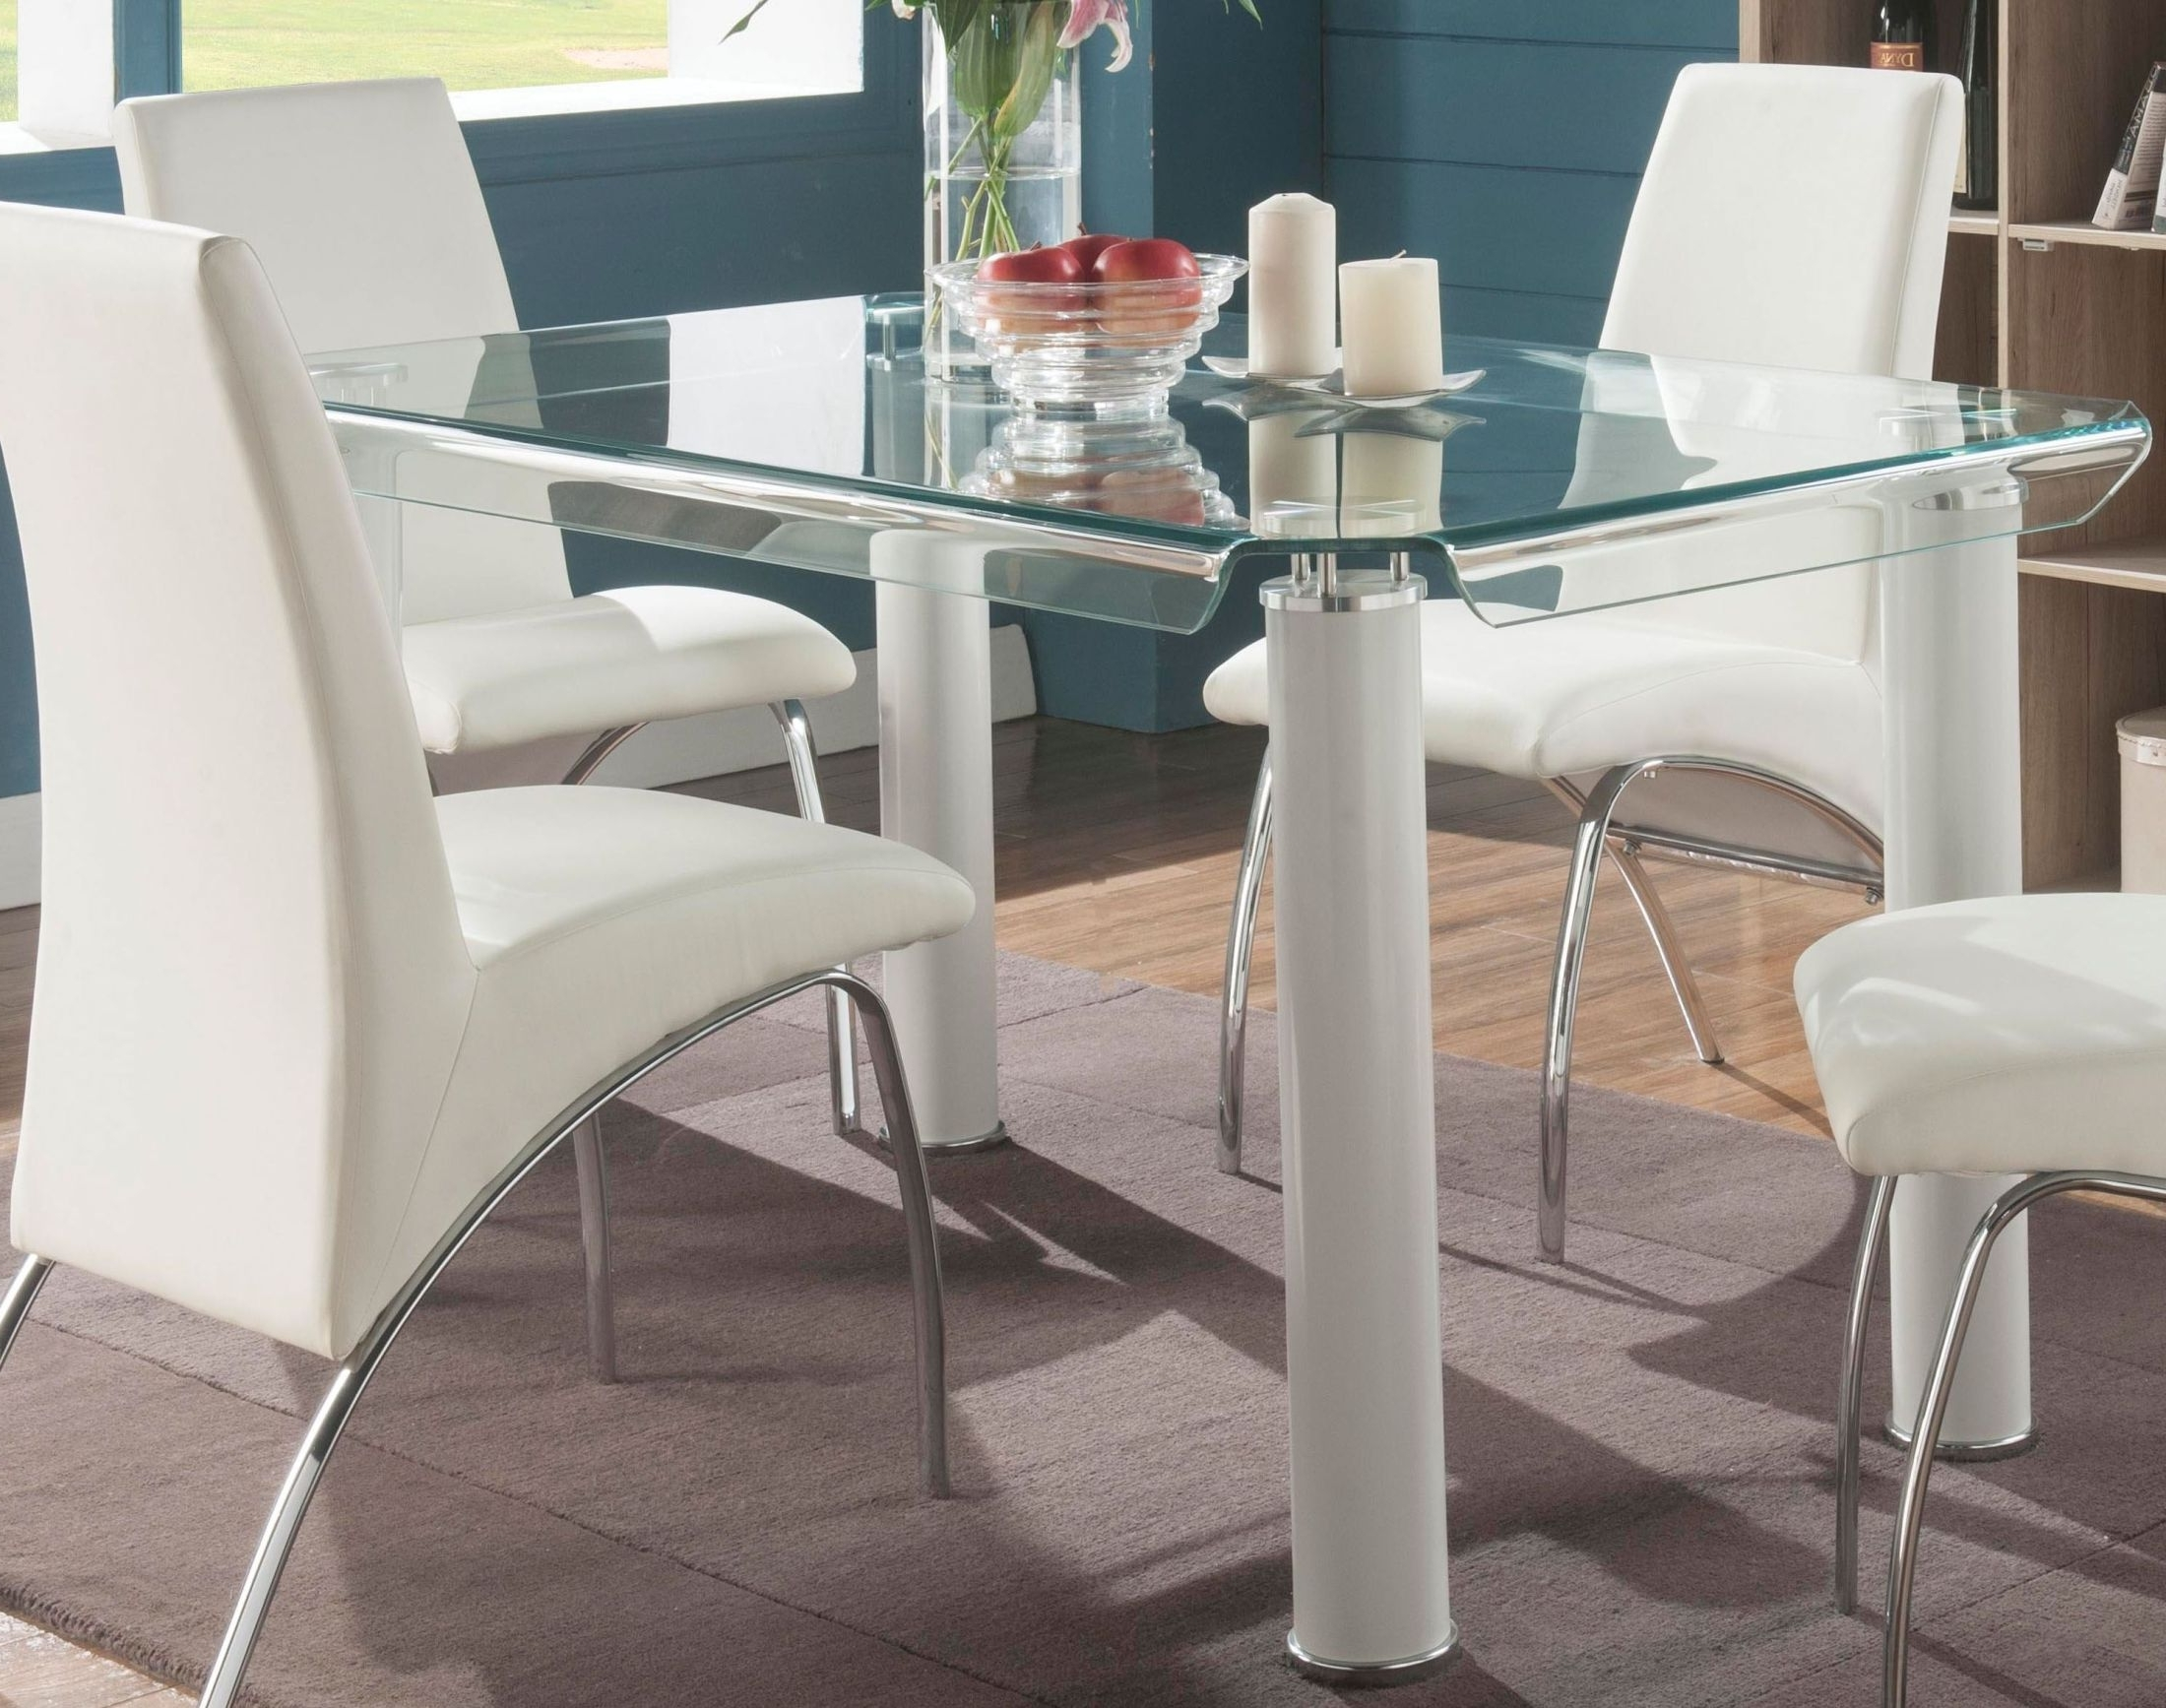 Acme Gordie White And Clear Glass Dining Table – Gordie Collection In Most Current Glass Dining Tables White Chairs (View 3 of 25)